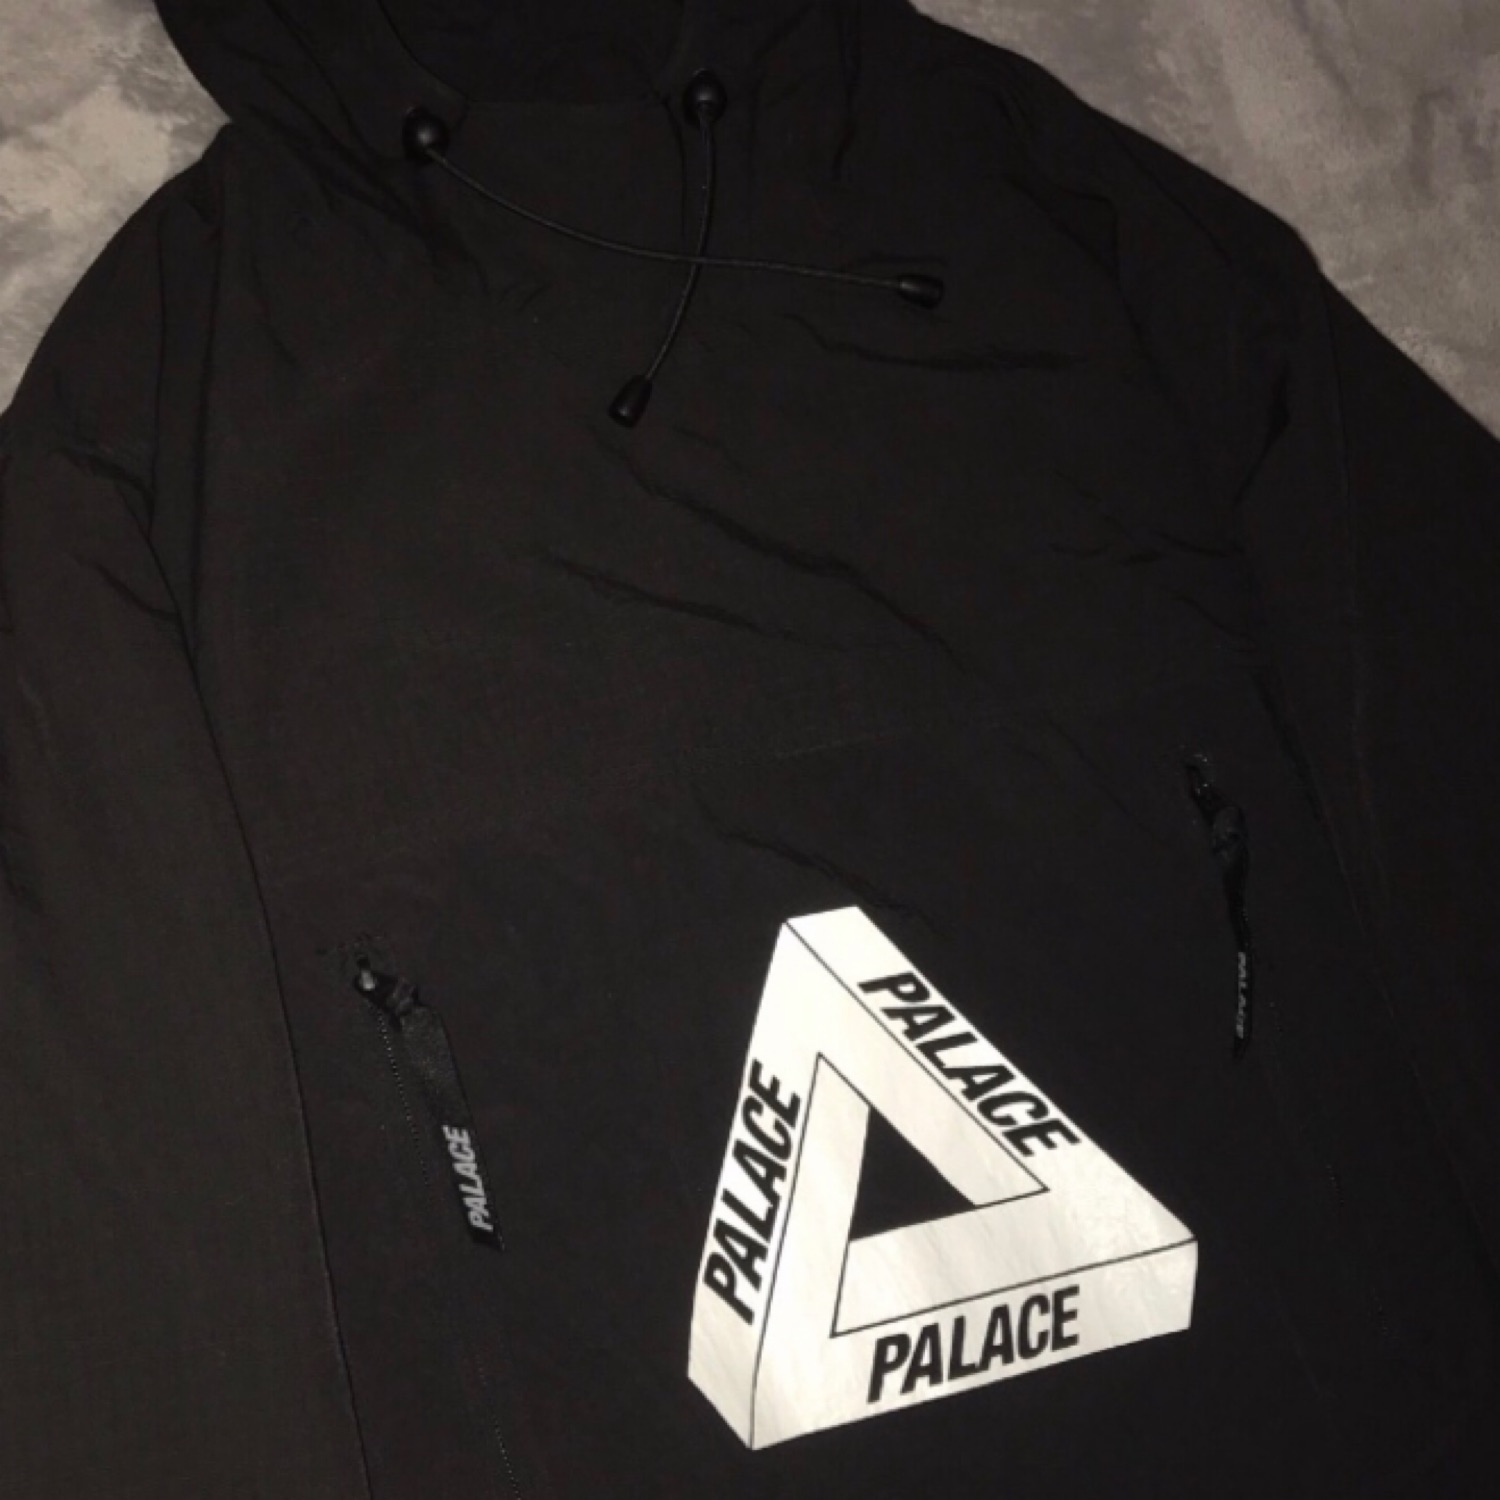 Palace Over Park Shell Top Black/White